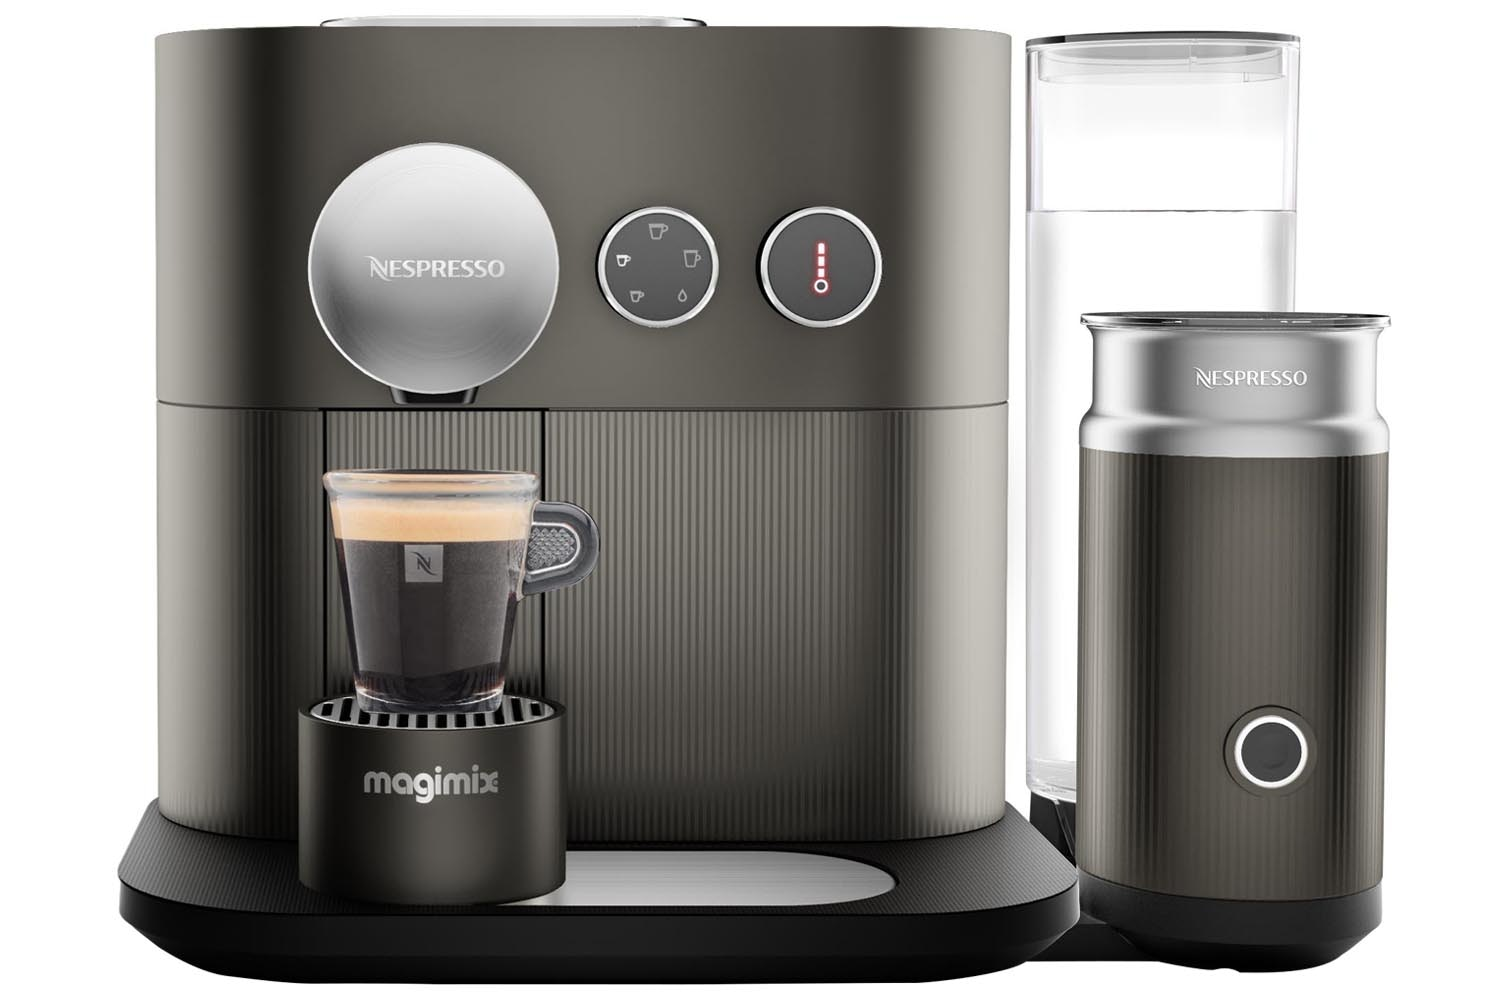 Magimix Nespresso Expert M500 Coffee Machine | 11380 |  Grey